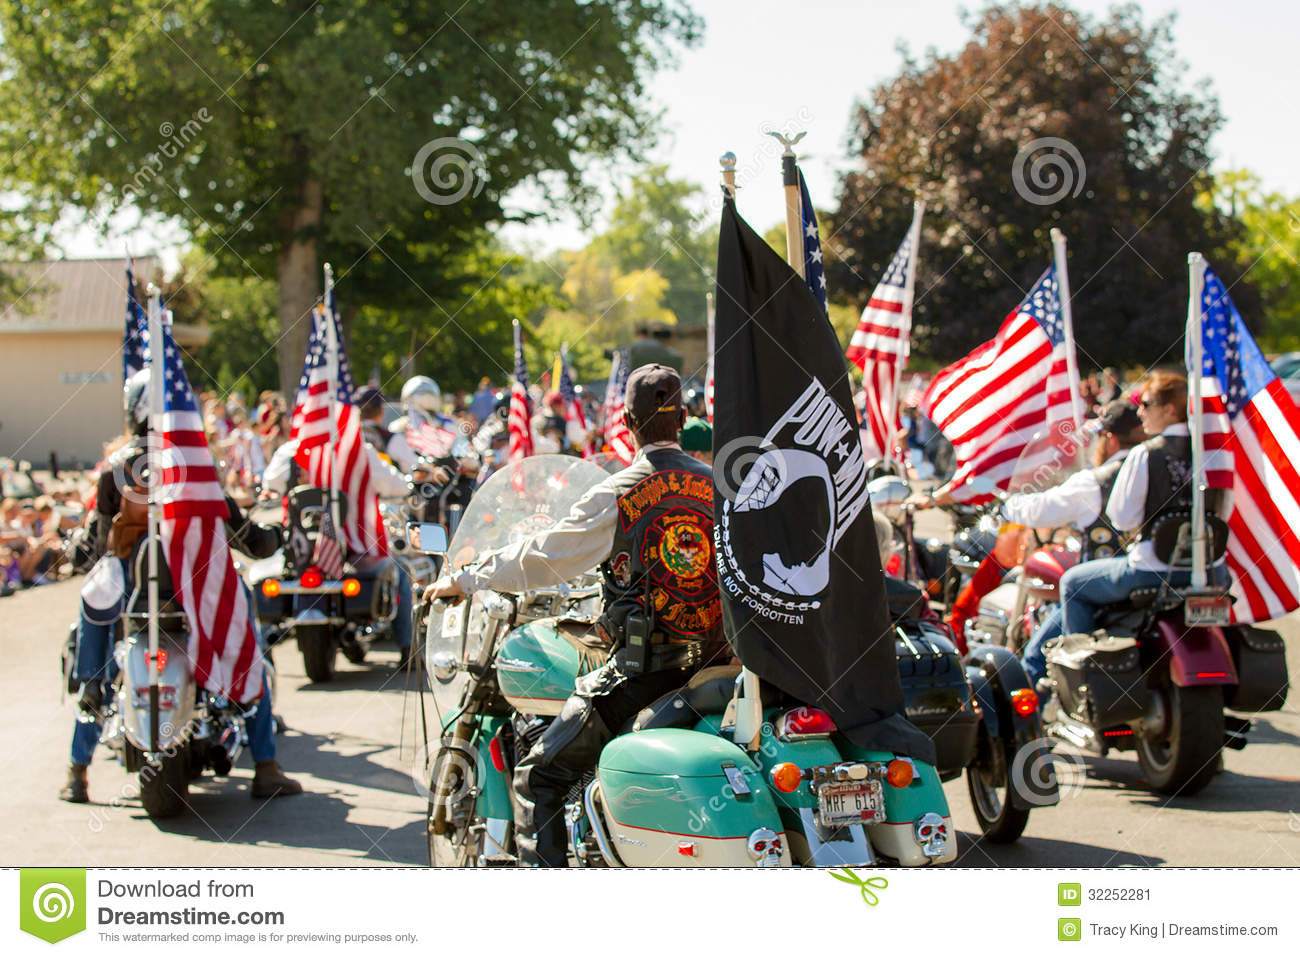 Motorcycle riders at the fourth of july parade in middleton